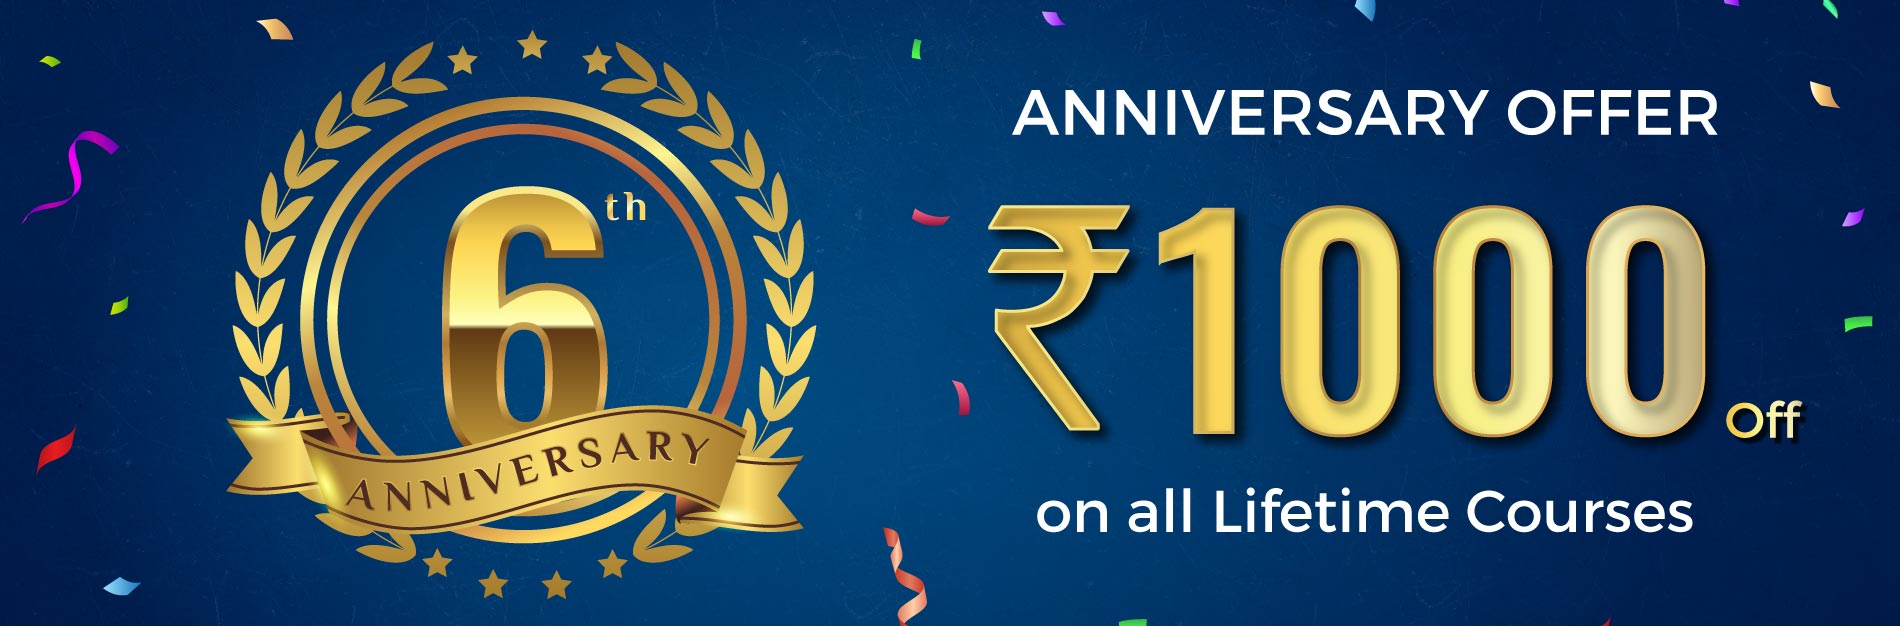 RACE INSTITUTE OFFER ON COURSE FEE - 6TH ANIVERSARY - BANK SSC COACHING